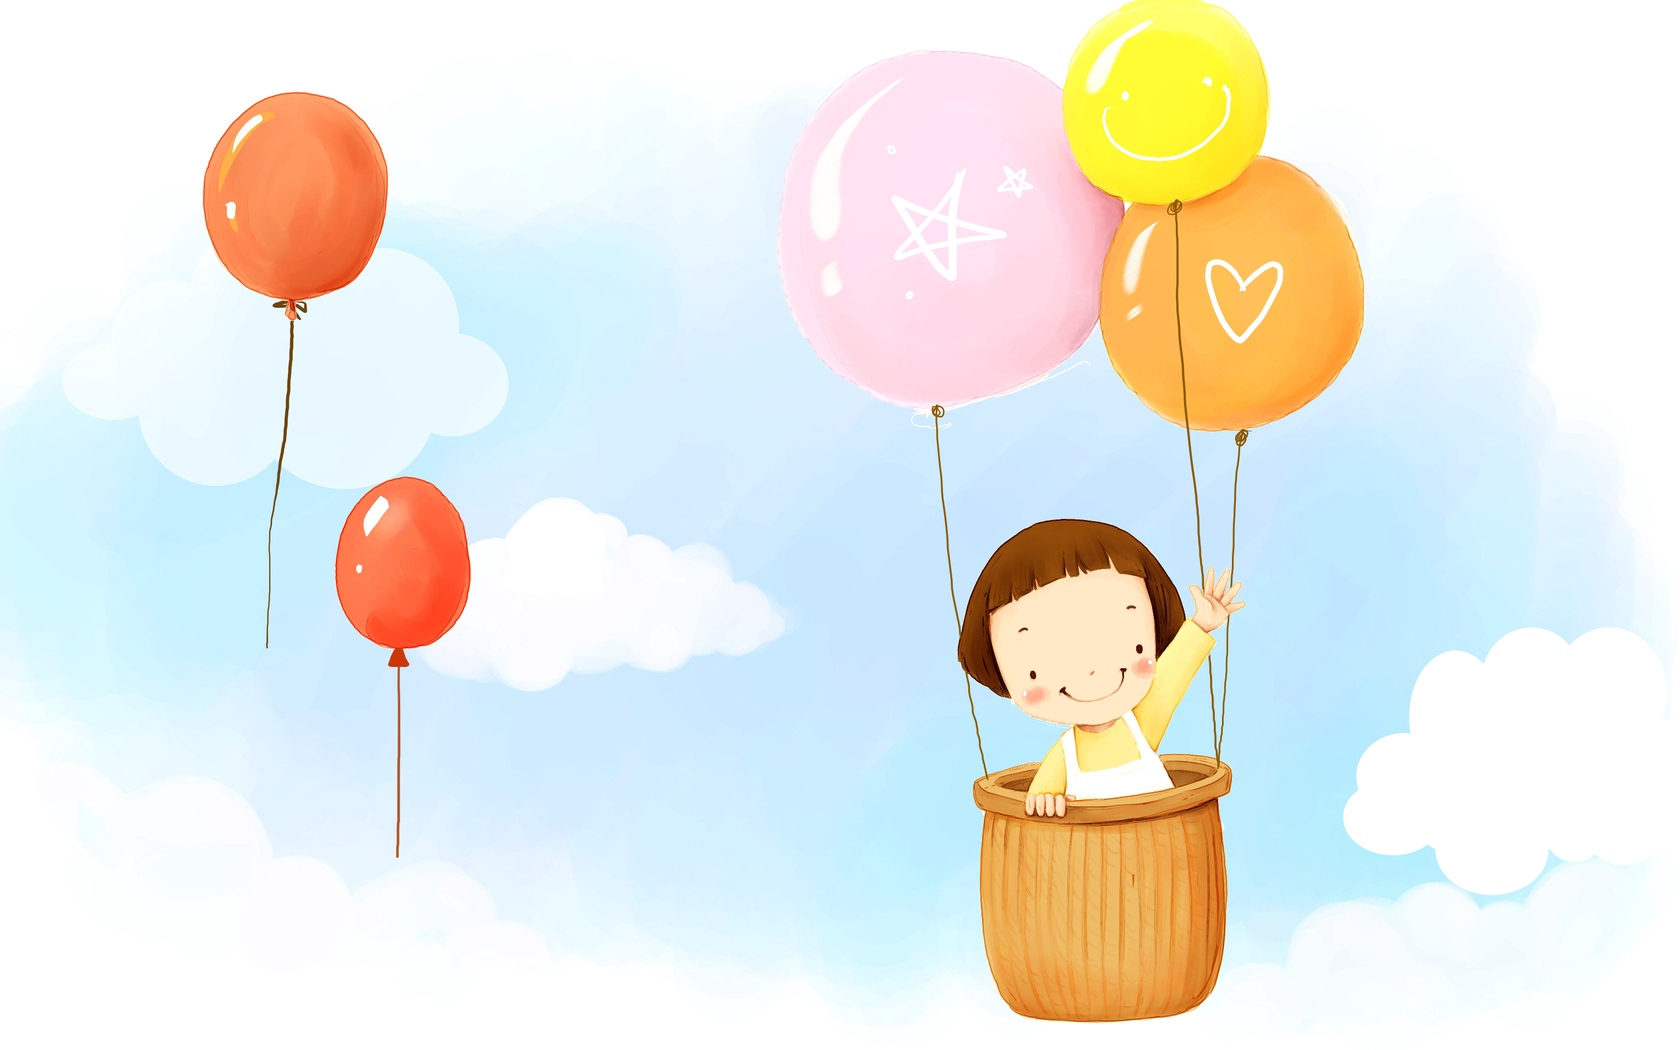 baby balloons flying sky clouds